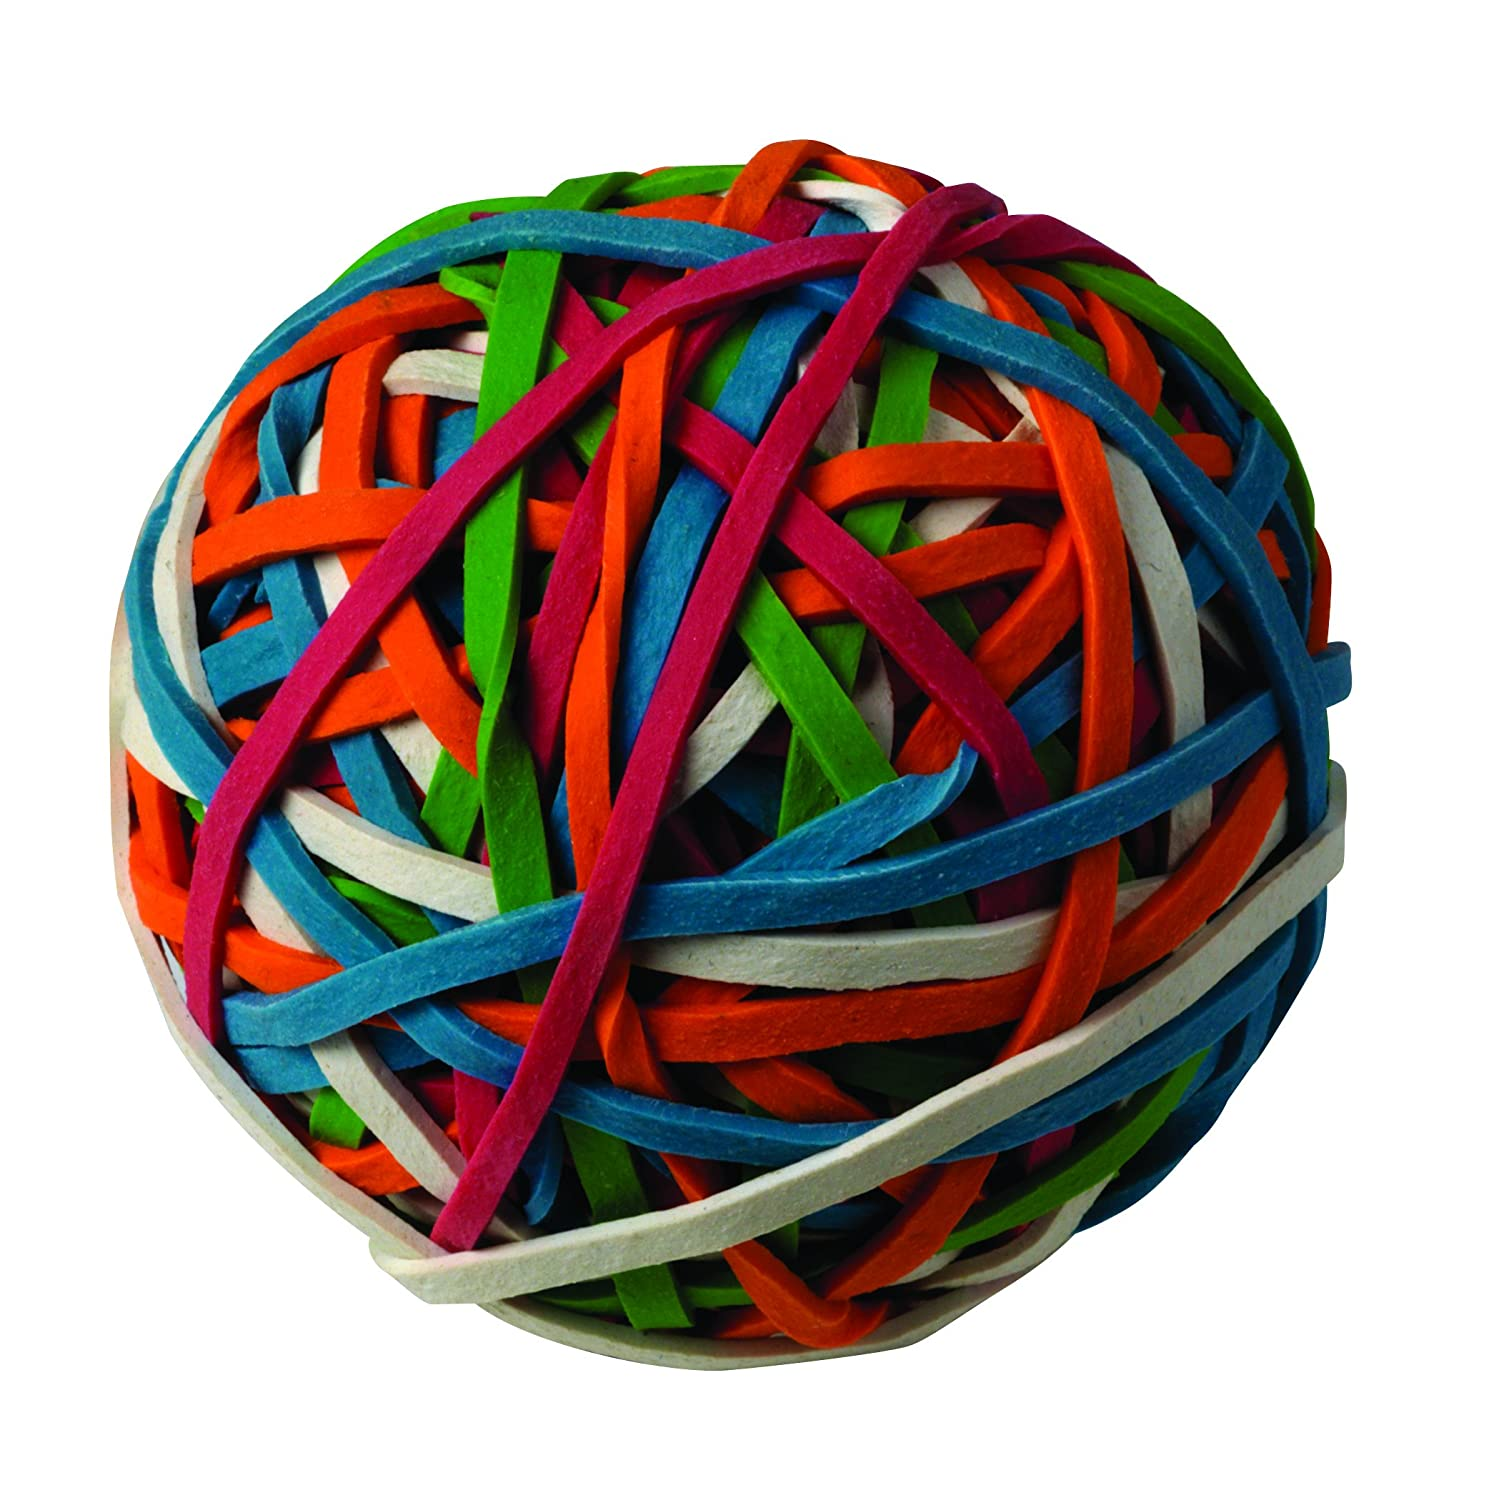 staples rubber band ball 1 ball office products